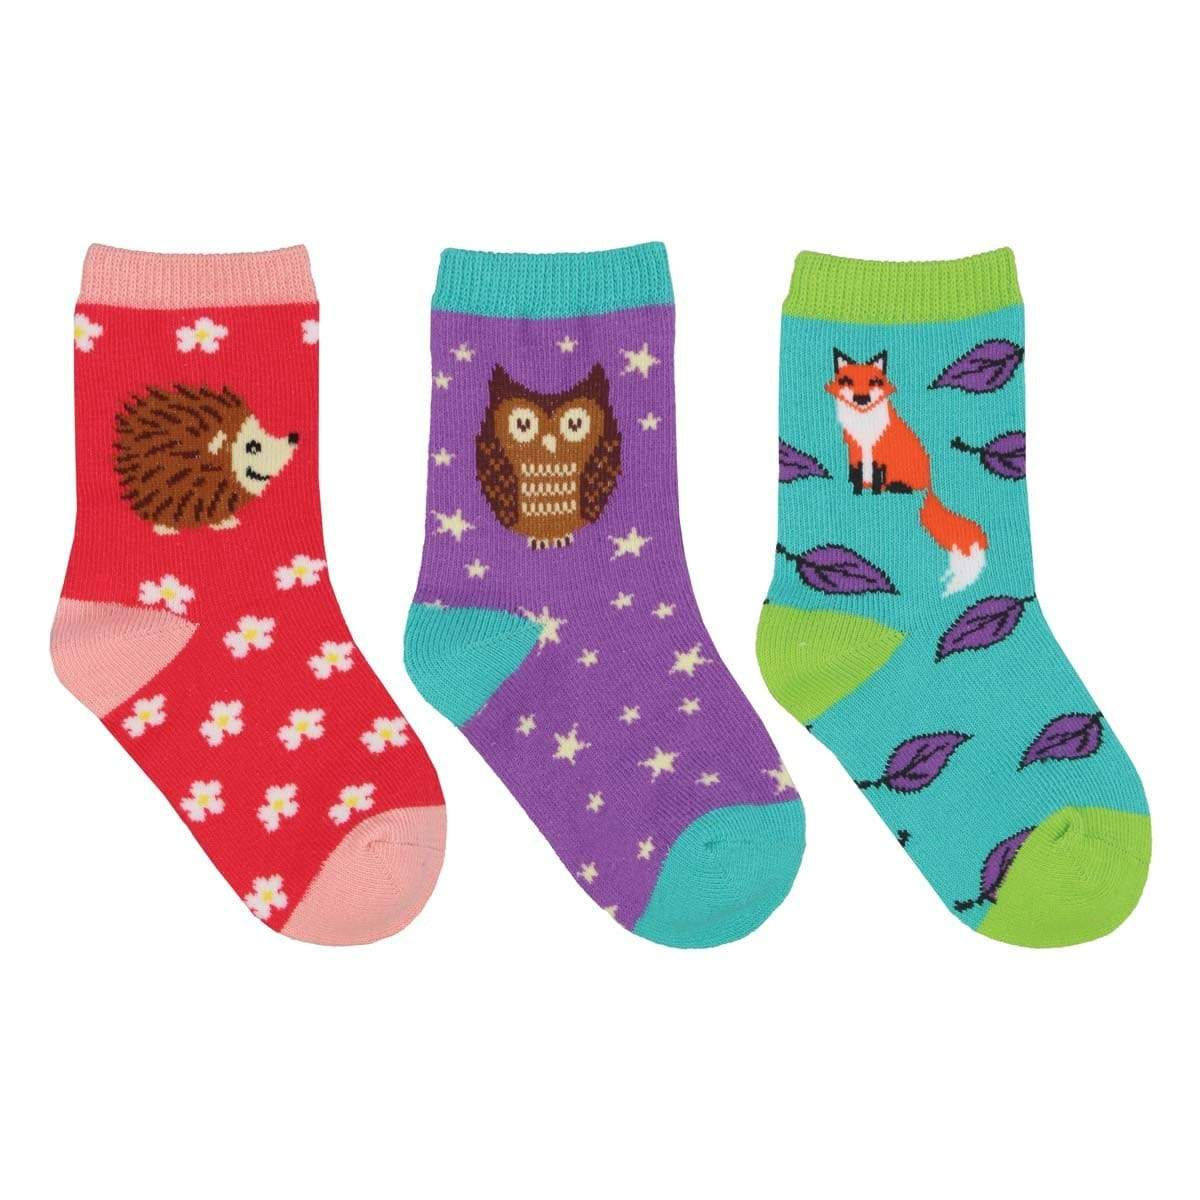 Woods You Be My Friend Crew Sock 3 Pack Multi